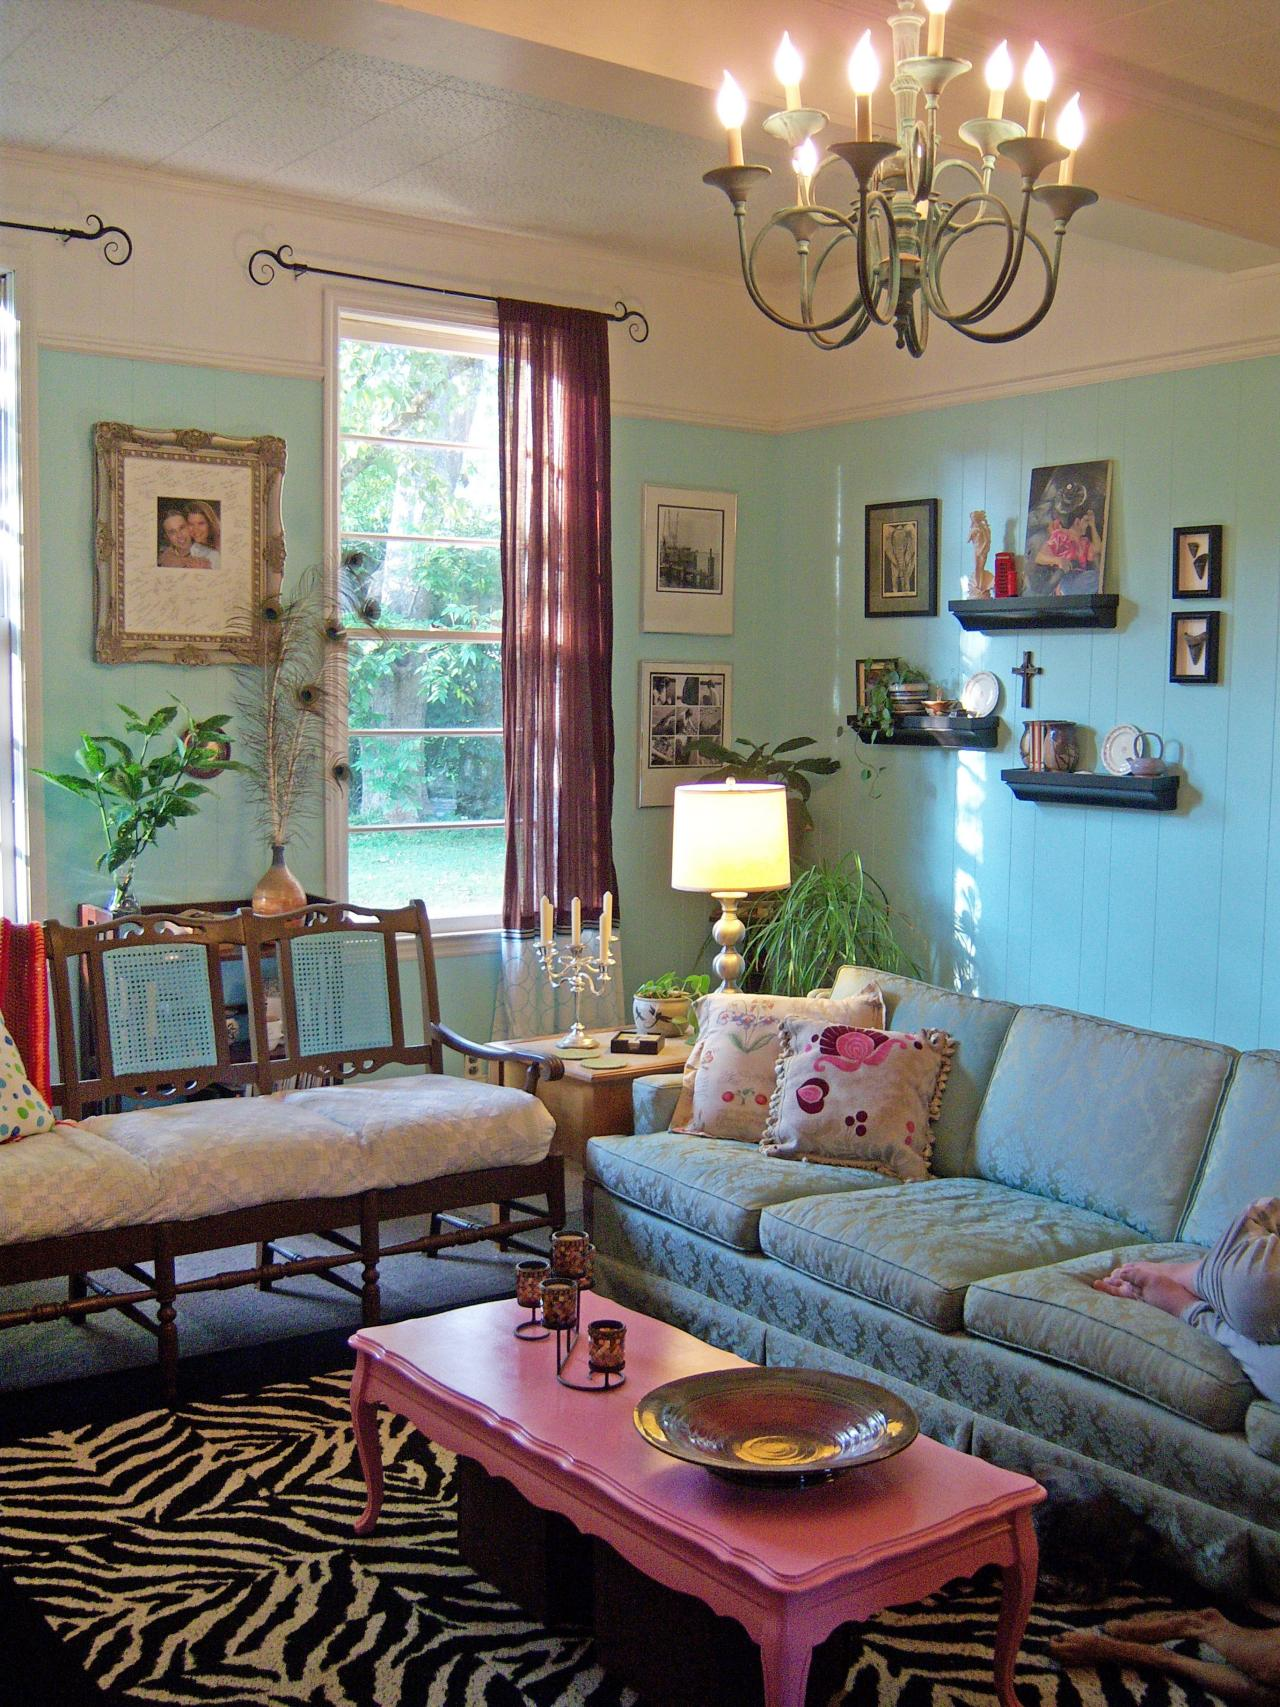 25 Turquoise Living Room Design Inspired By Beauty Of